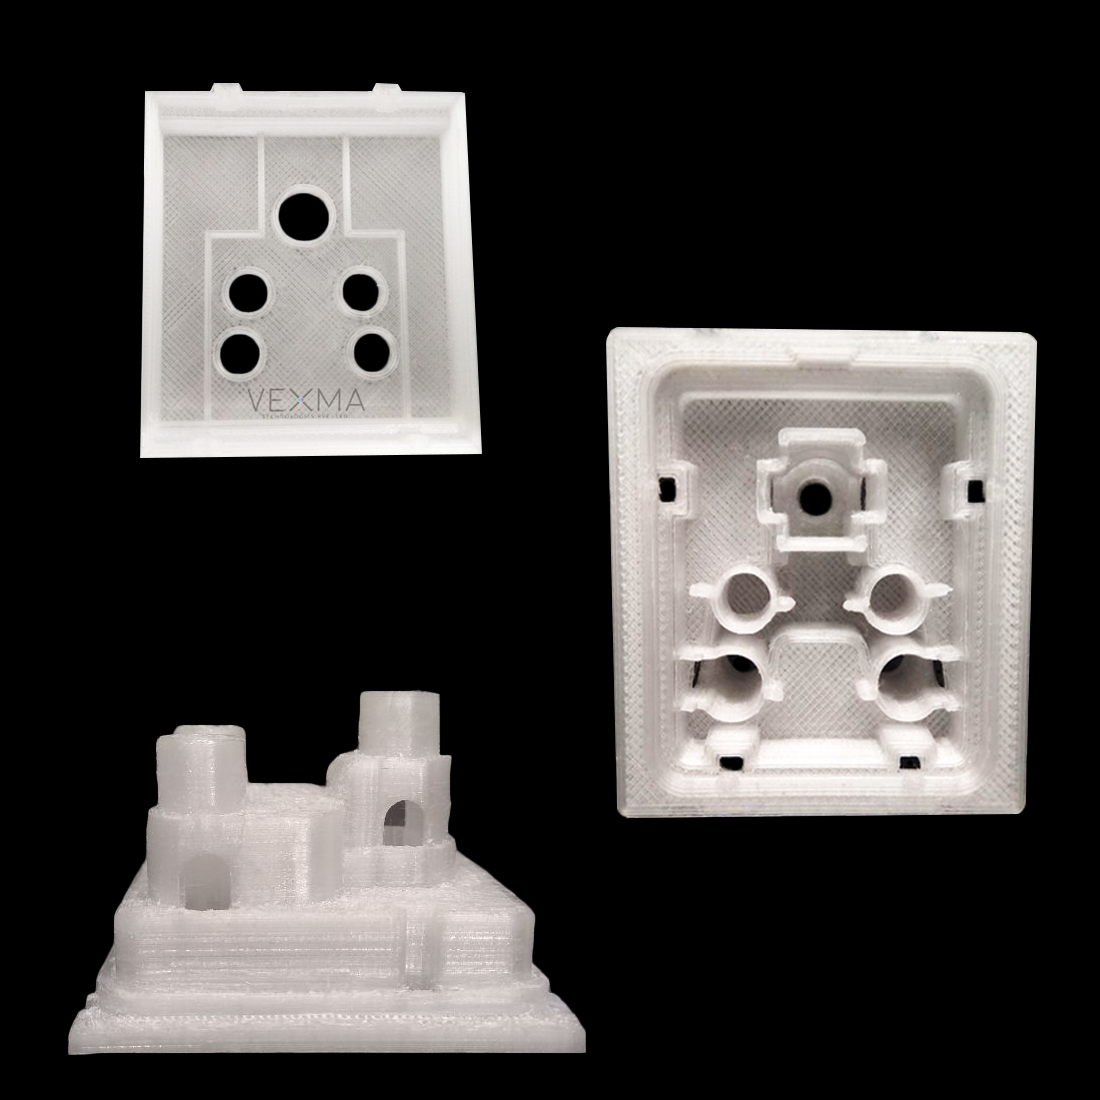 3dprinted-prototype-electronics-applications-power Plug Socket